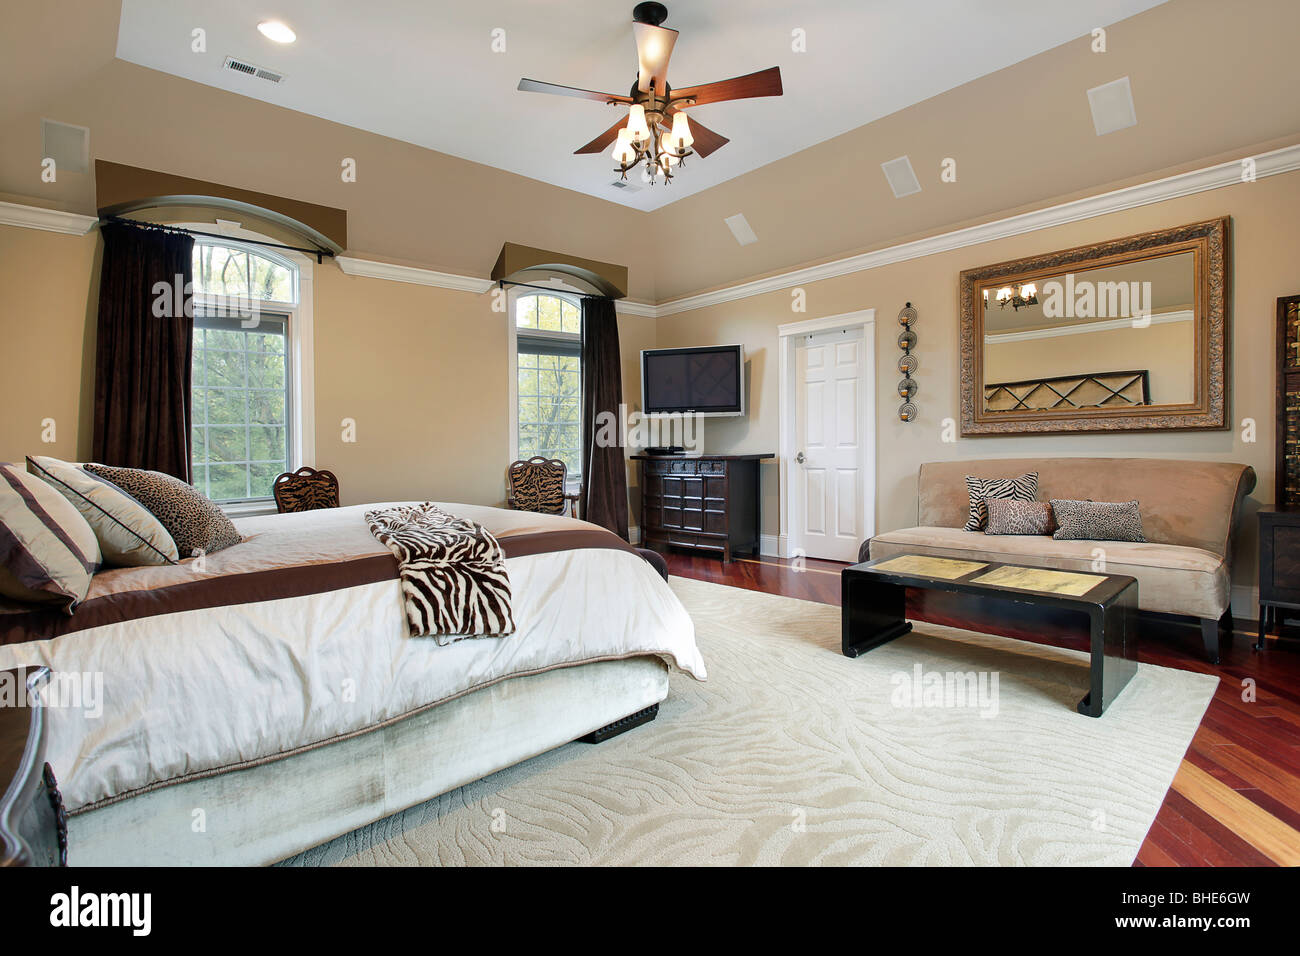 Master bedroom in luxury home with tray ceiling Stock Photo ...